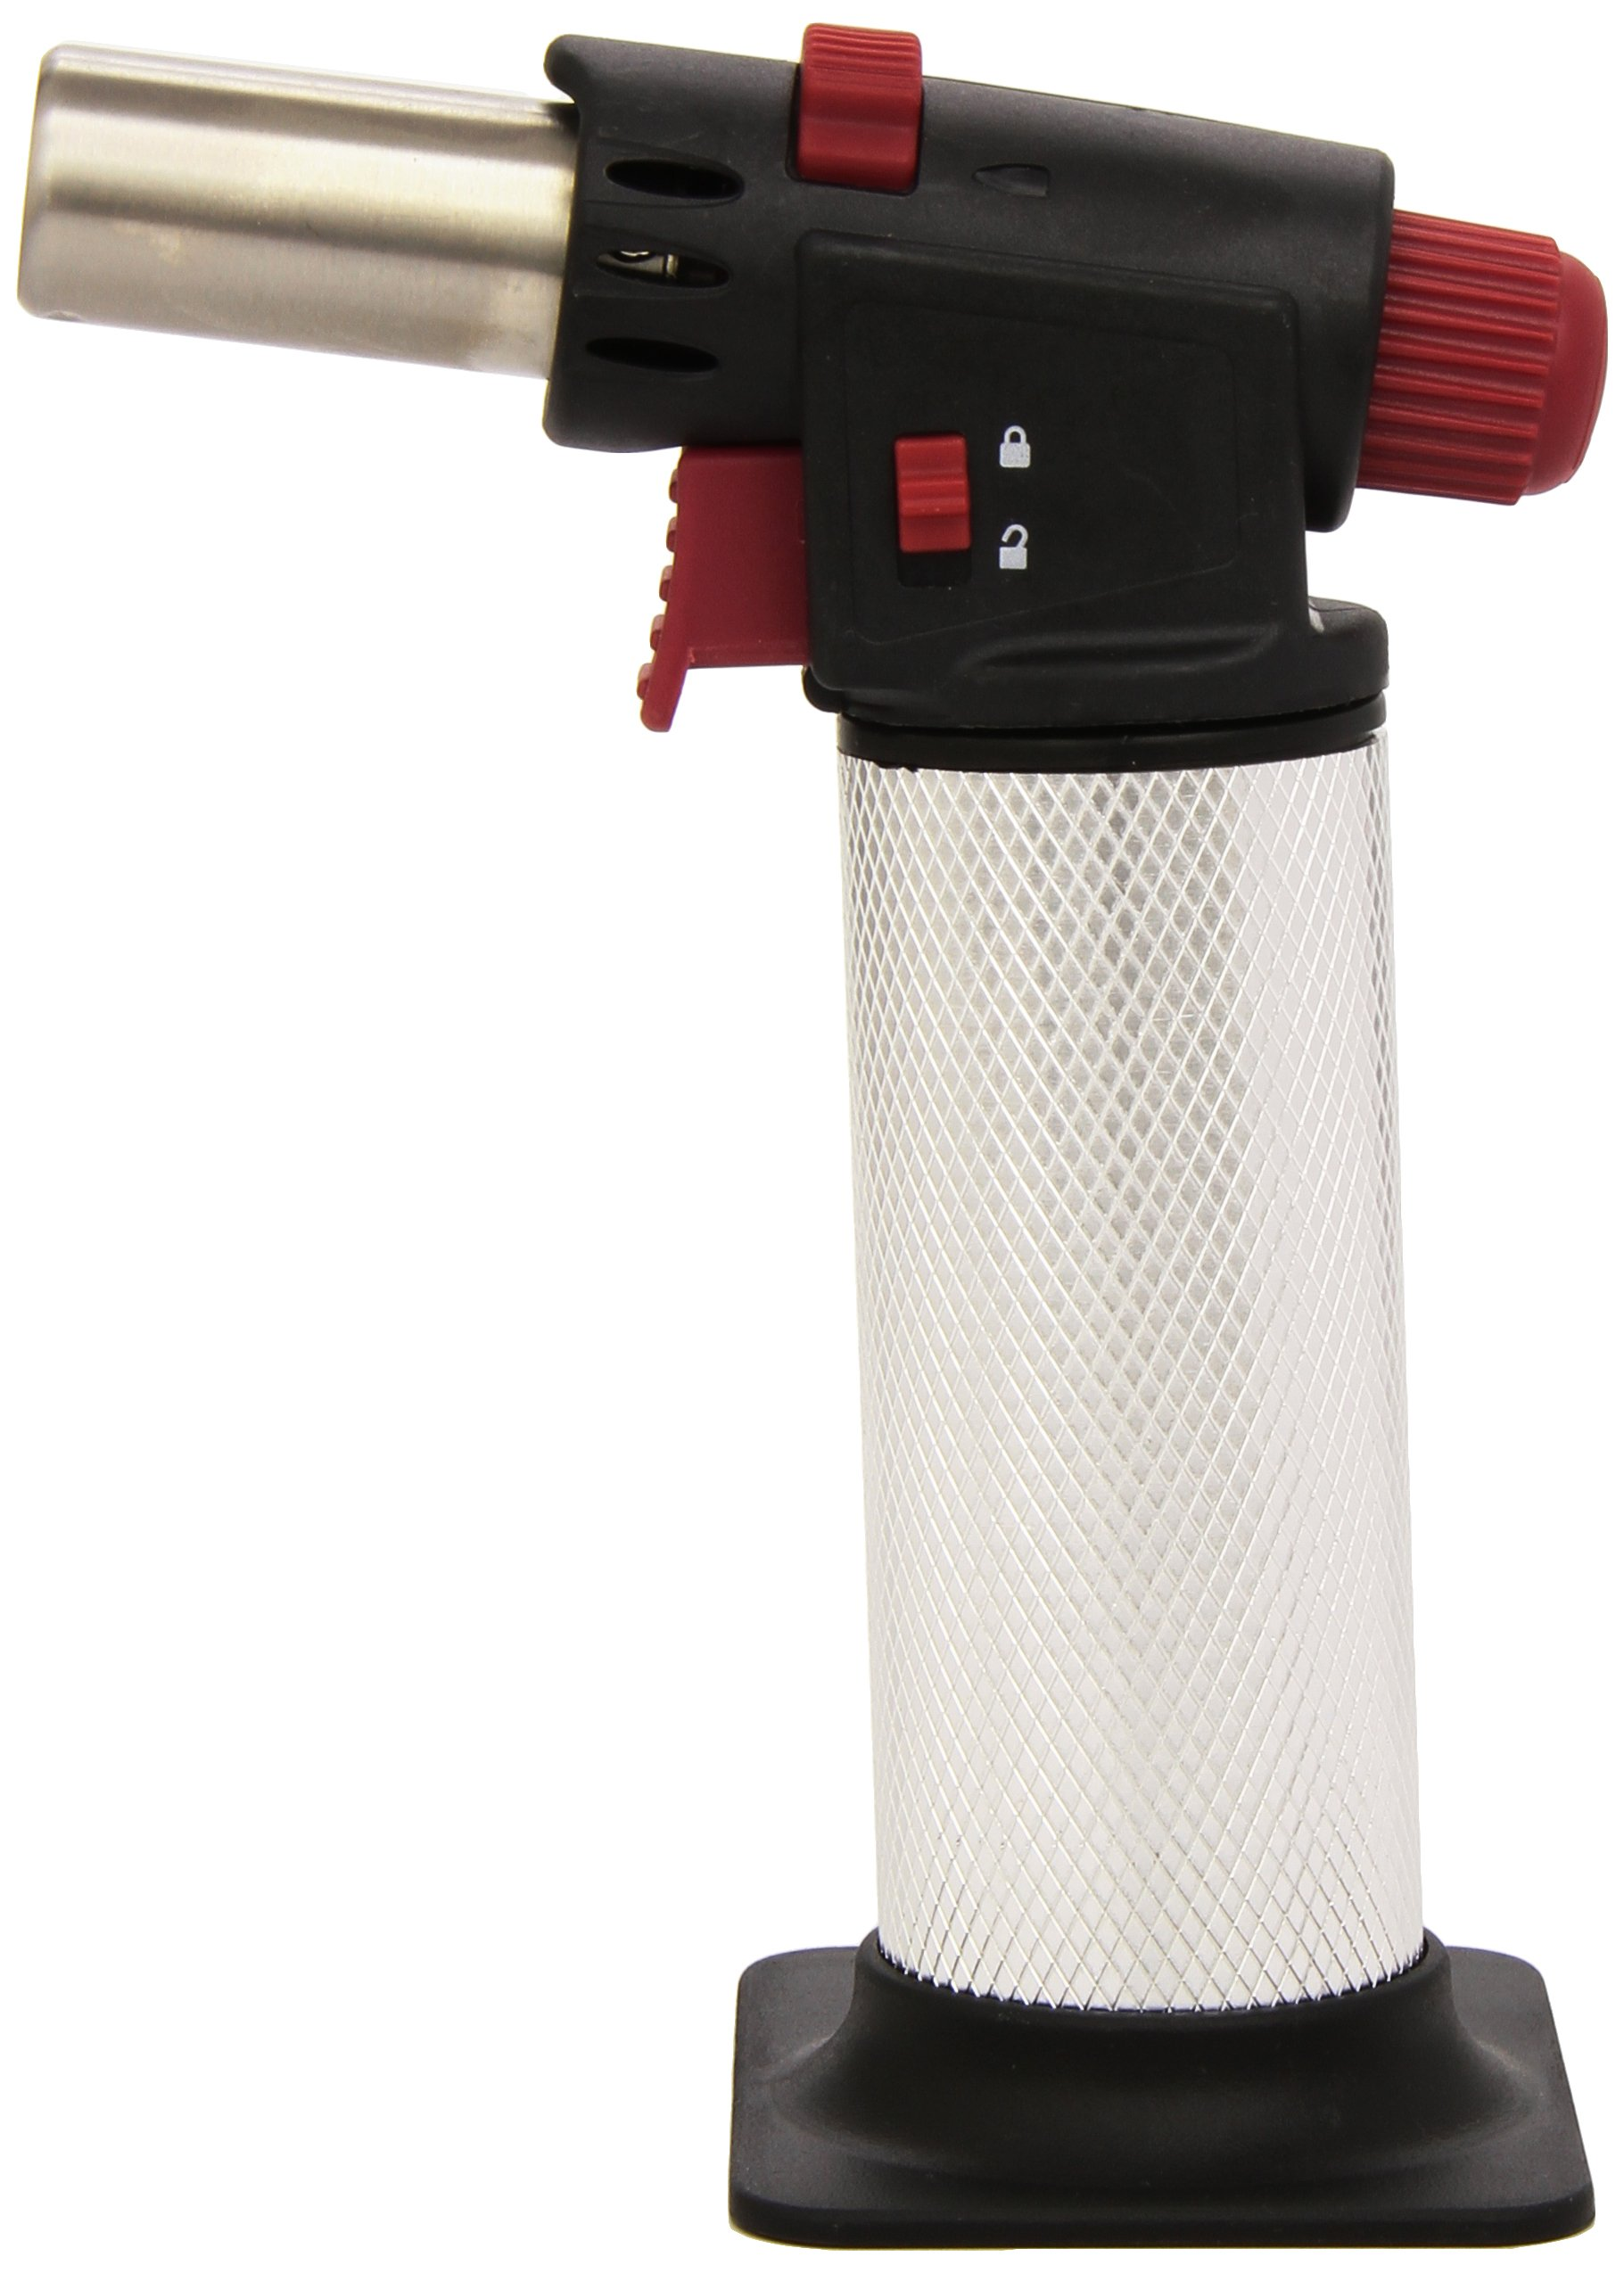 Kitchen Craft Master Class Deluxe Professional Cook's Blowtorch by Kitchen Craft (Image #2)